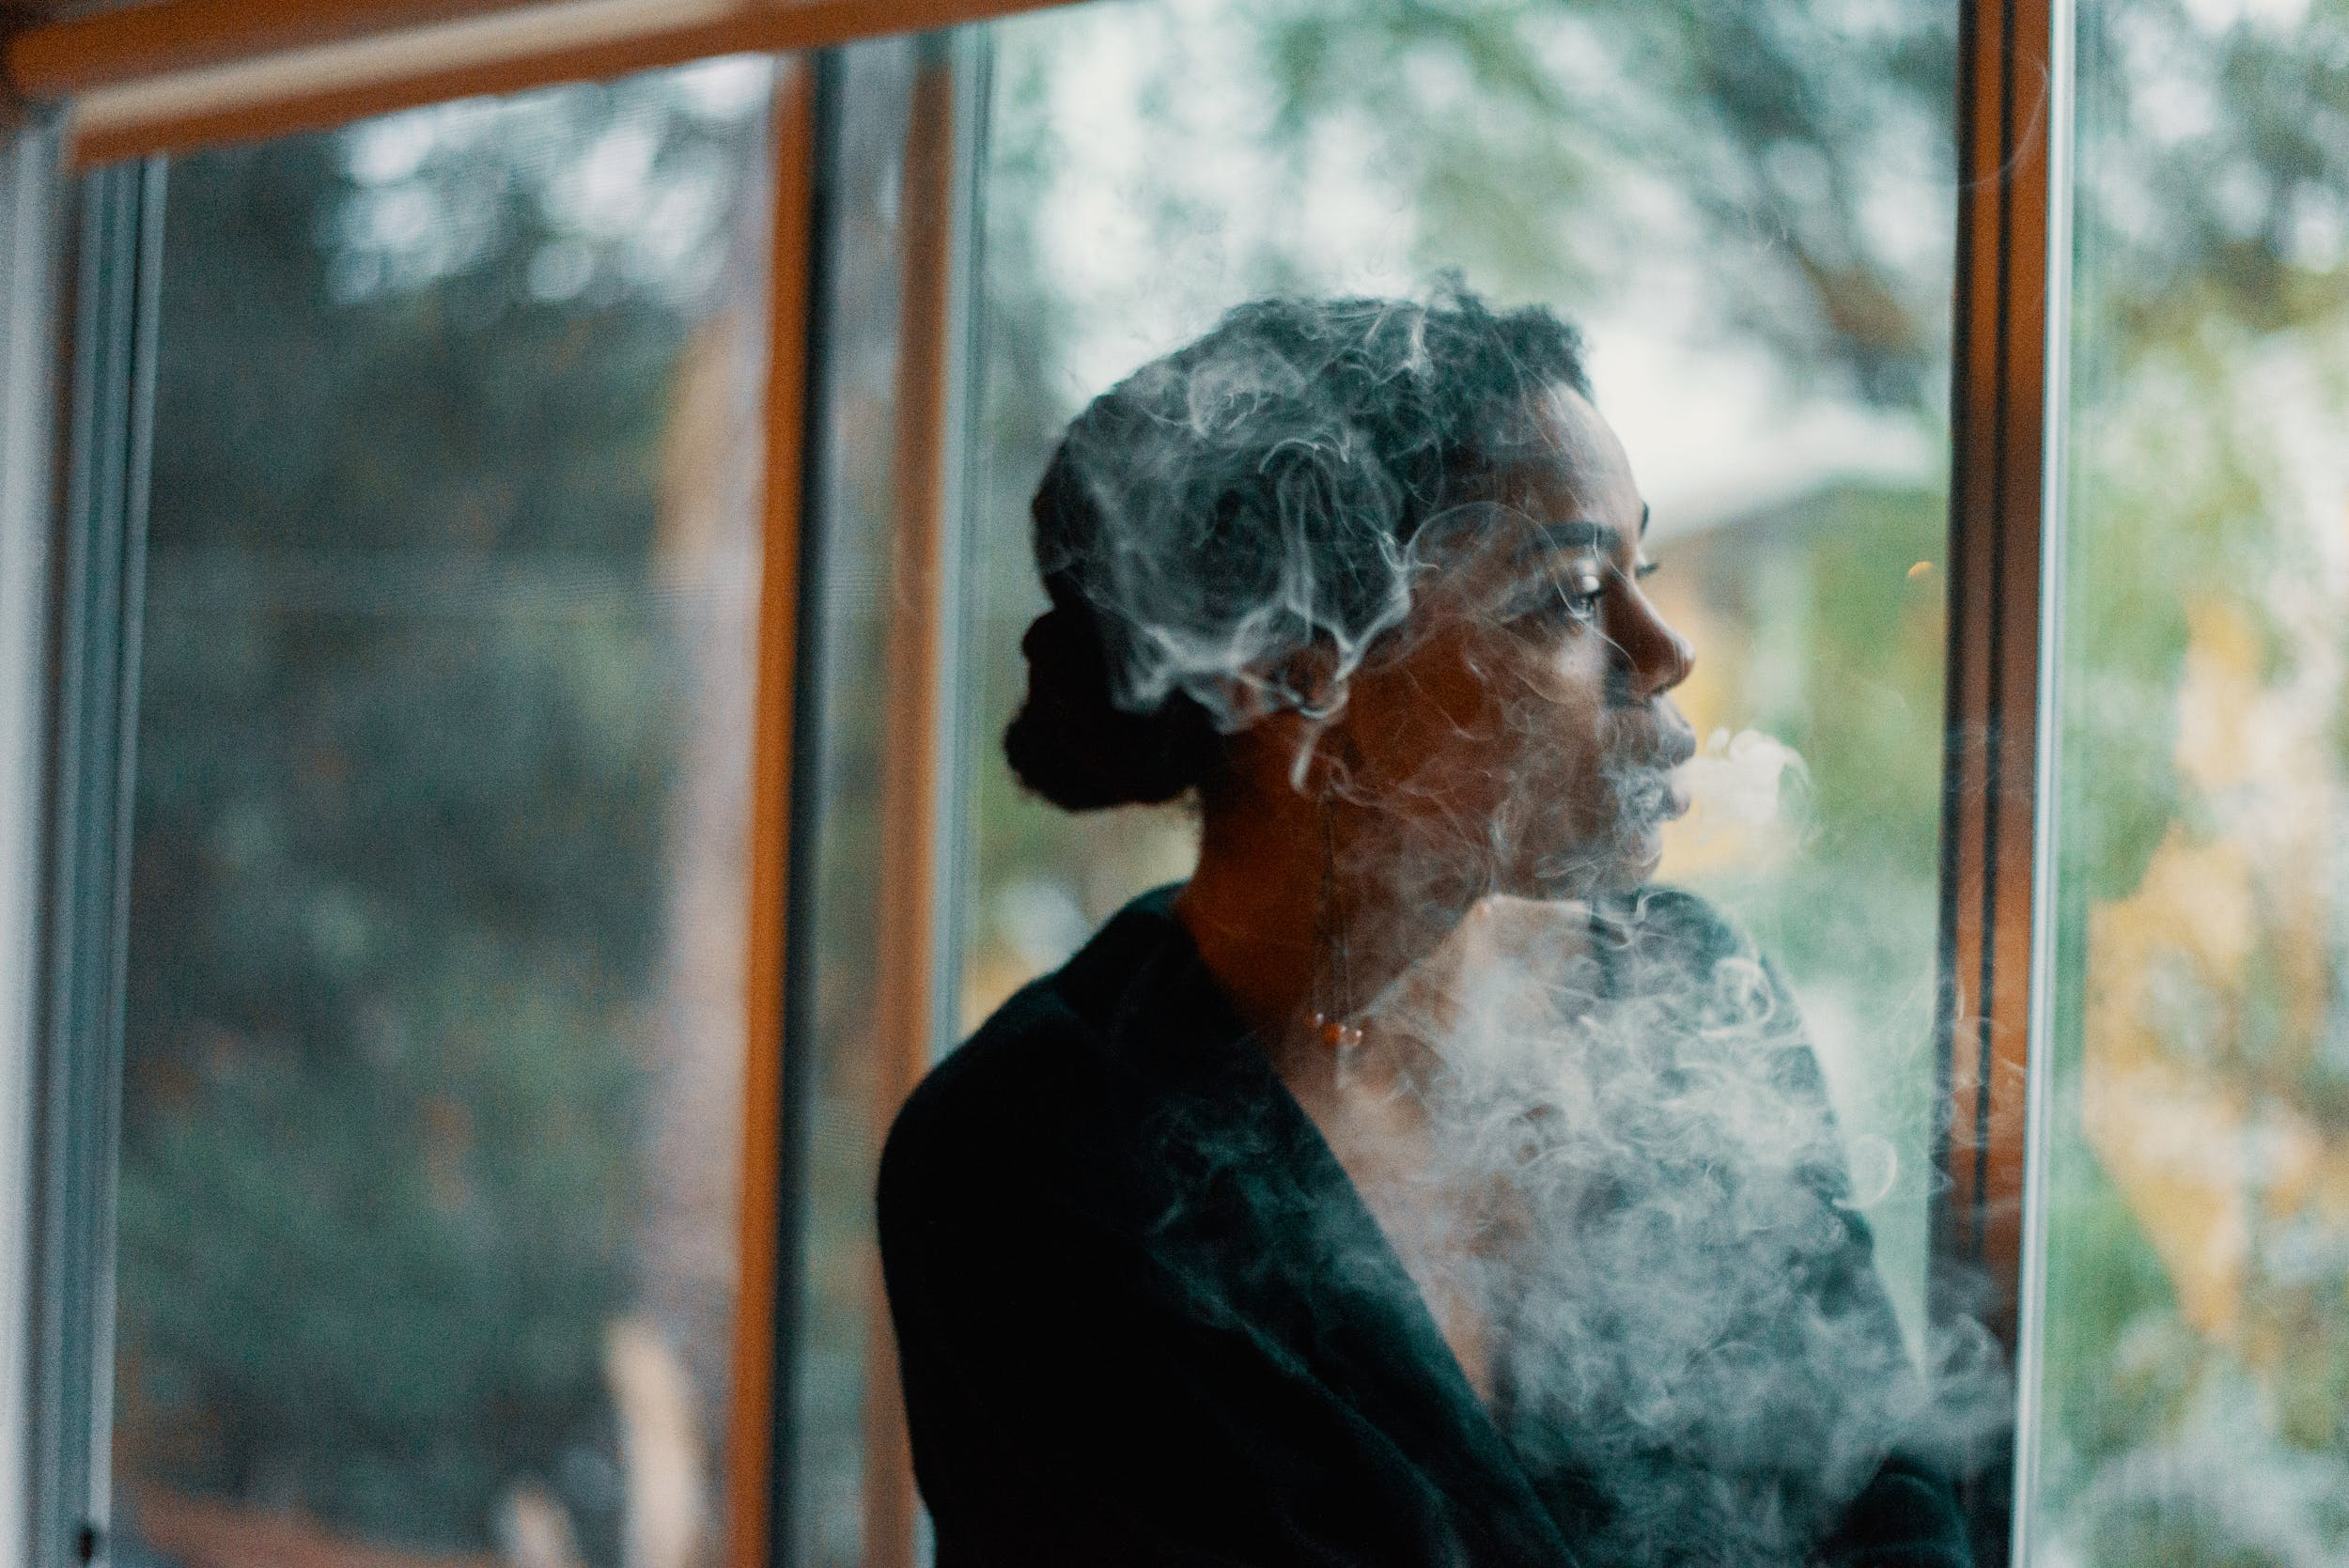 Best CBD Strains 37 Here Are The Best CBD Strains For a Chilled Out Session